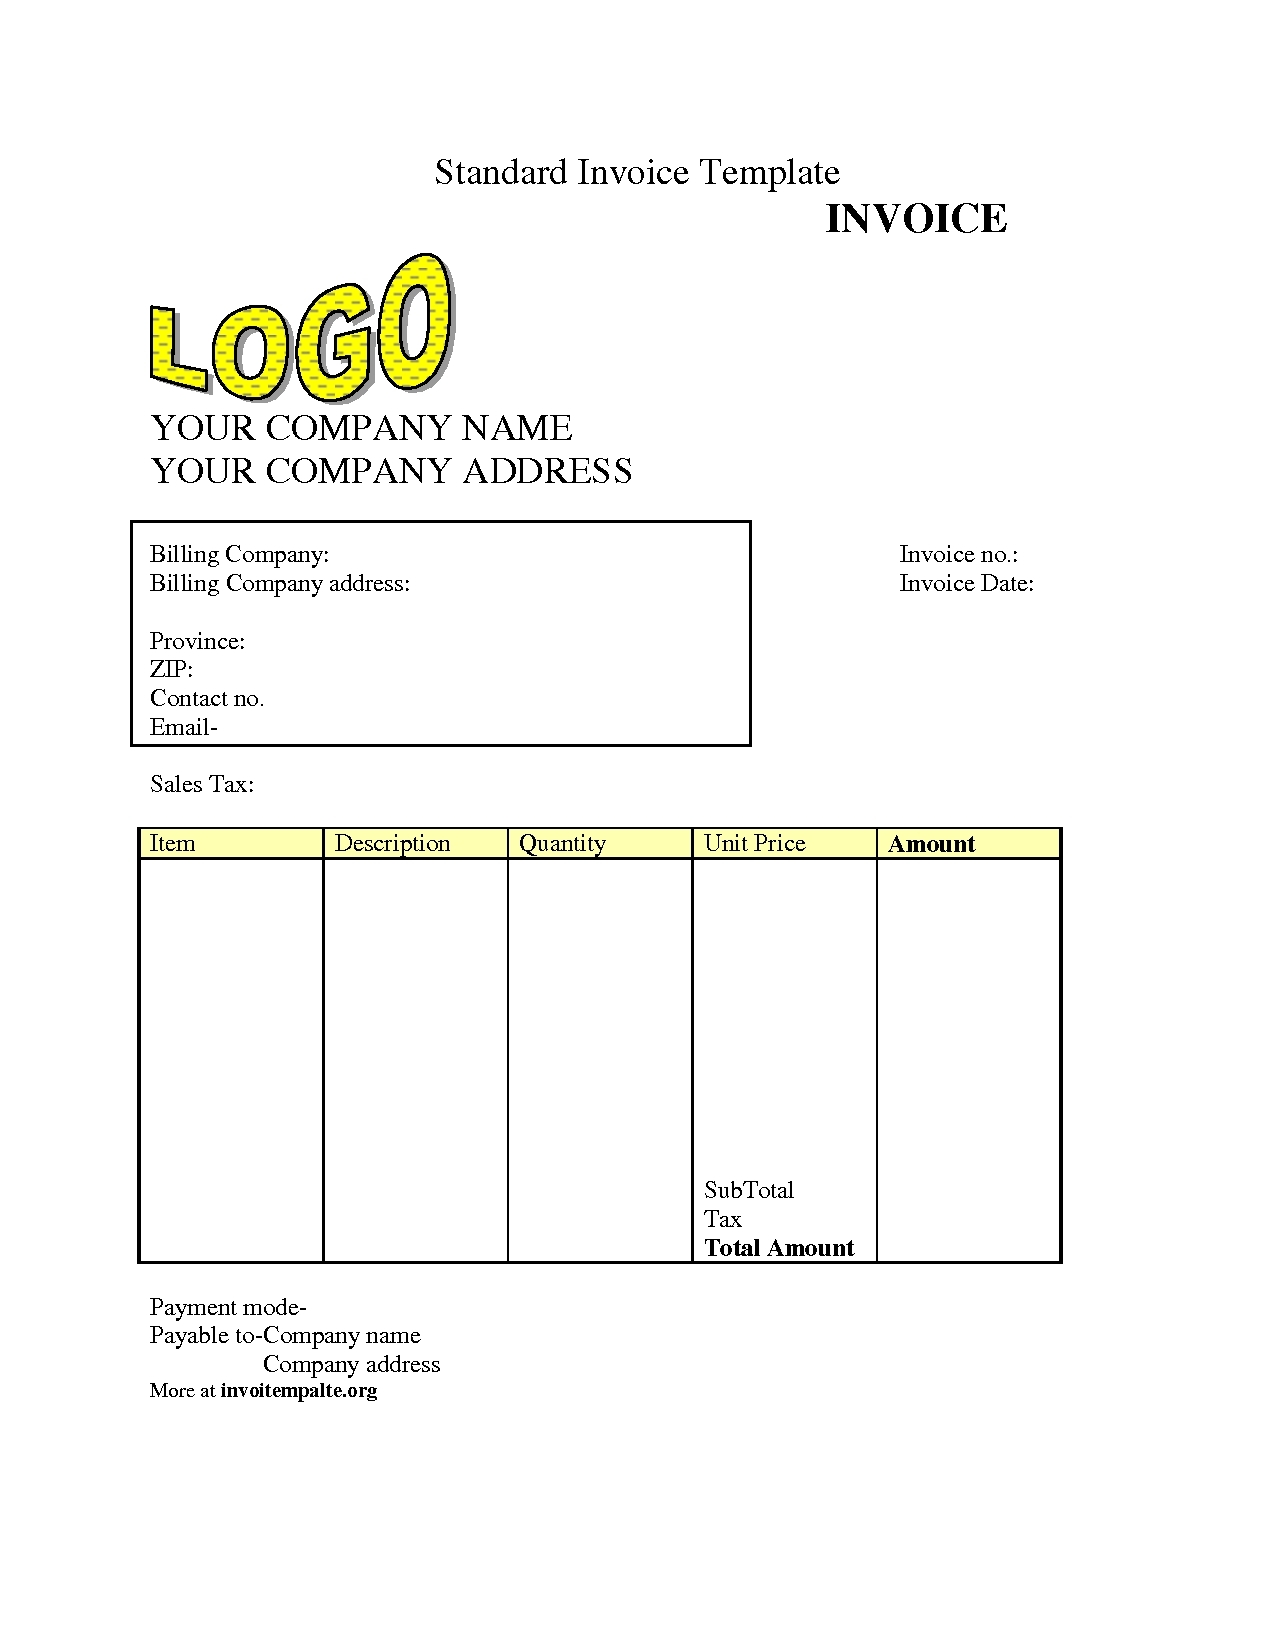 download invoice free – Download Invoice Free